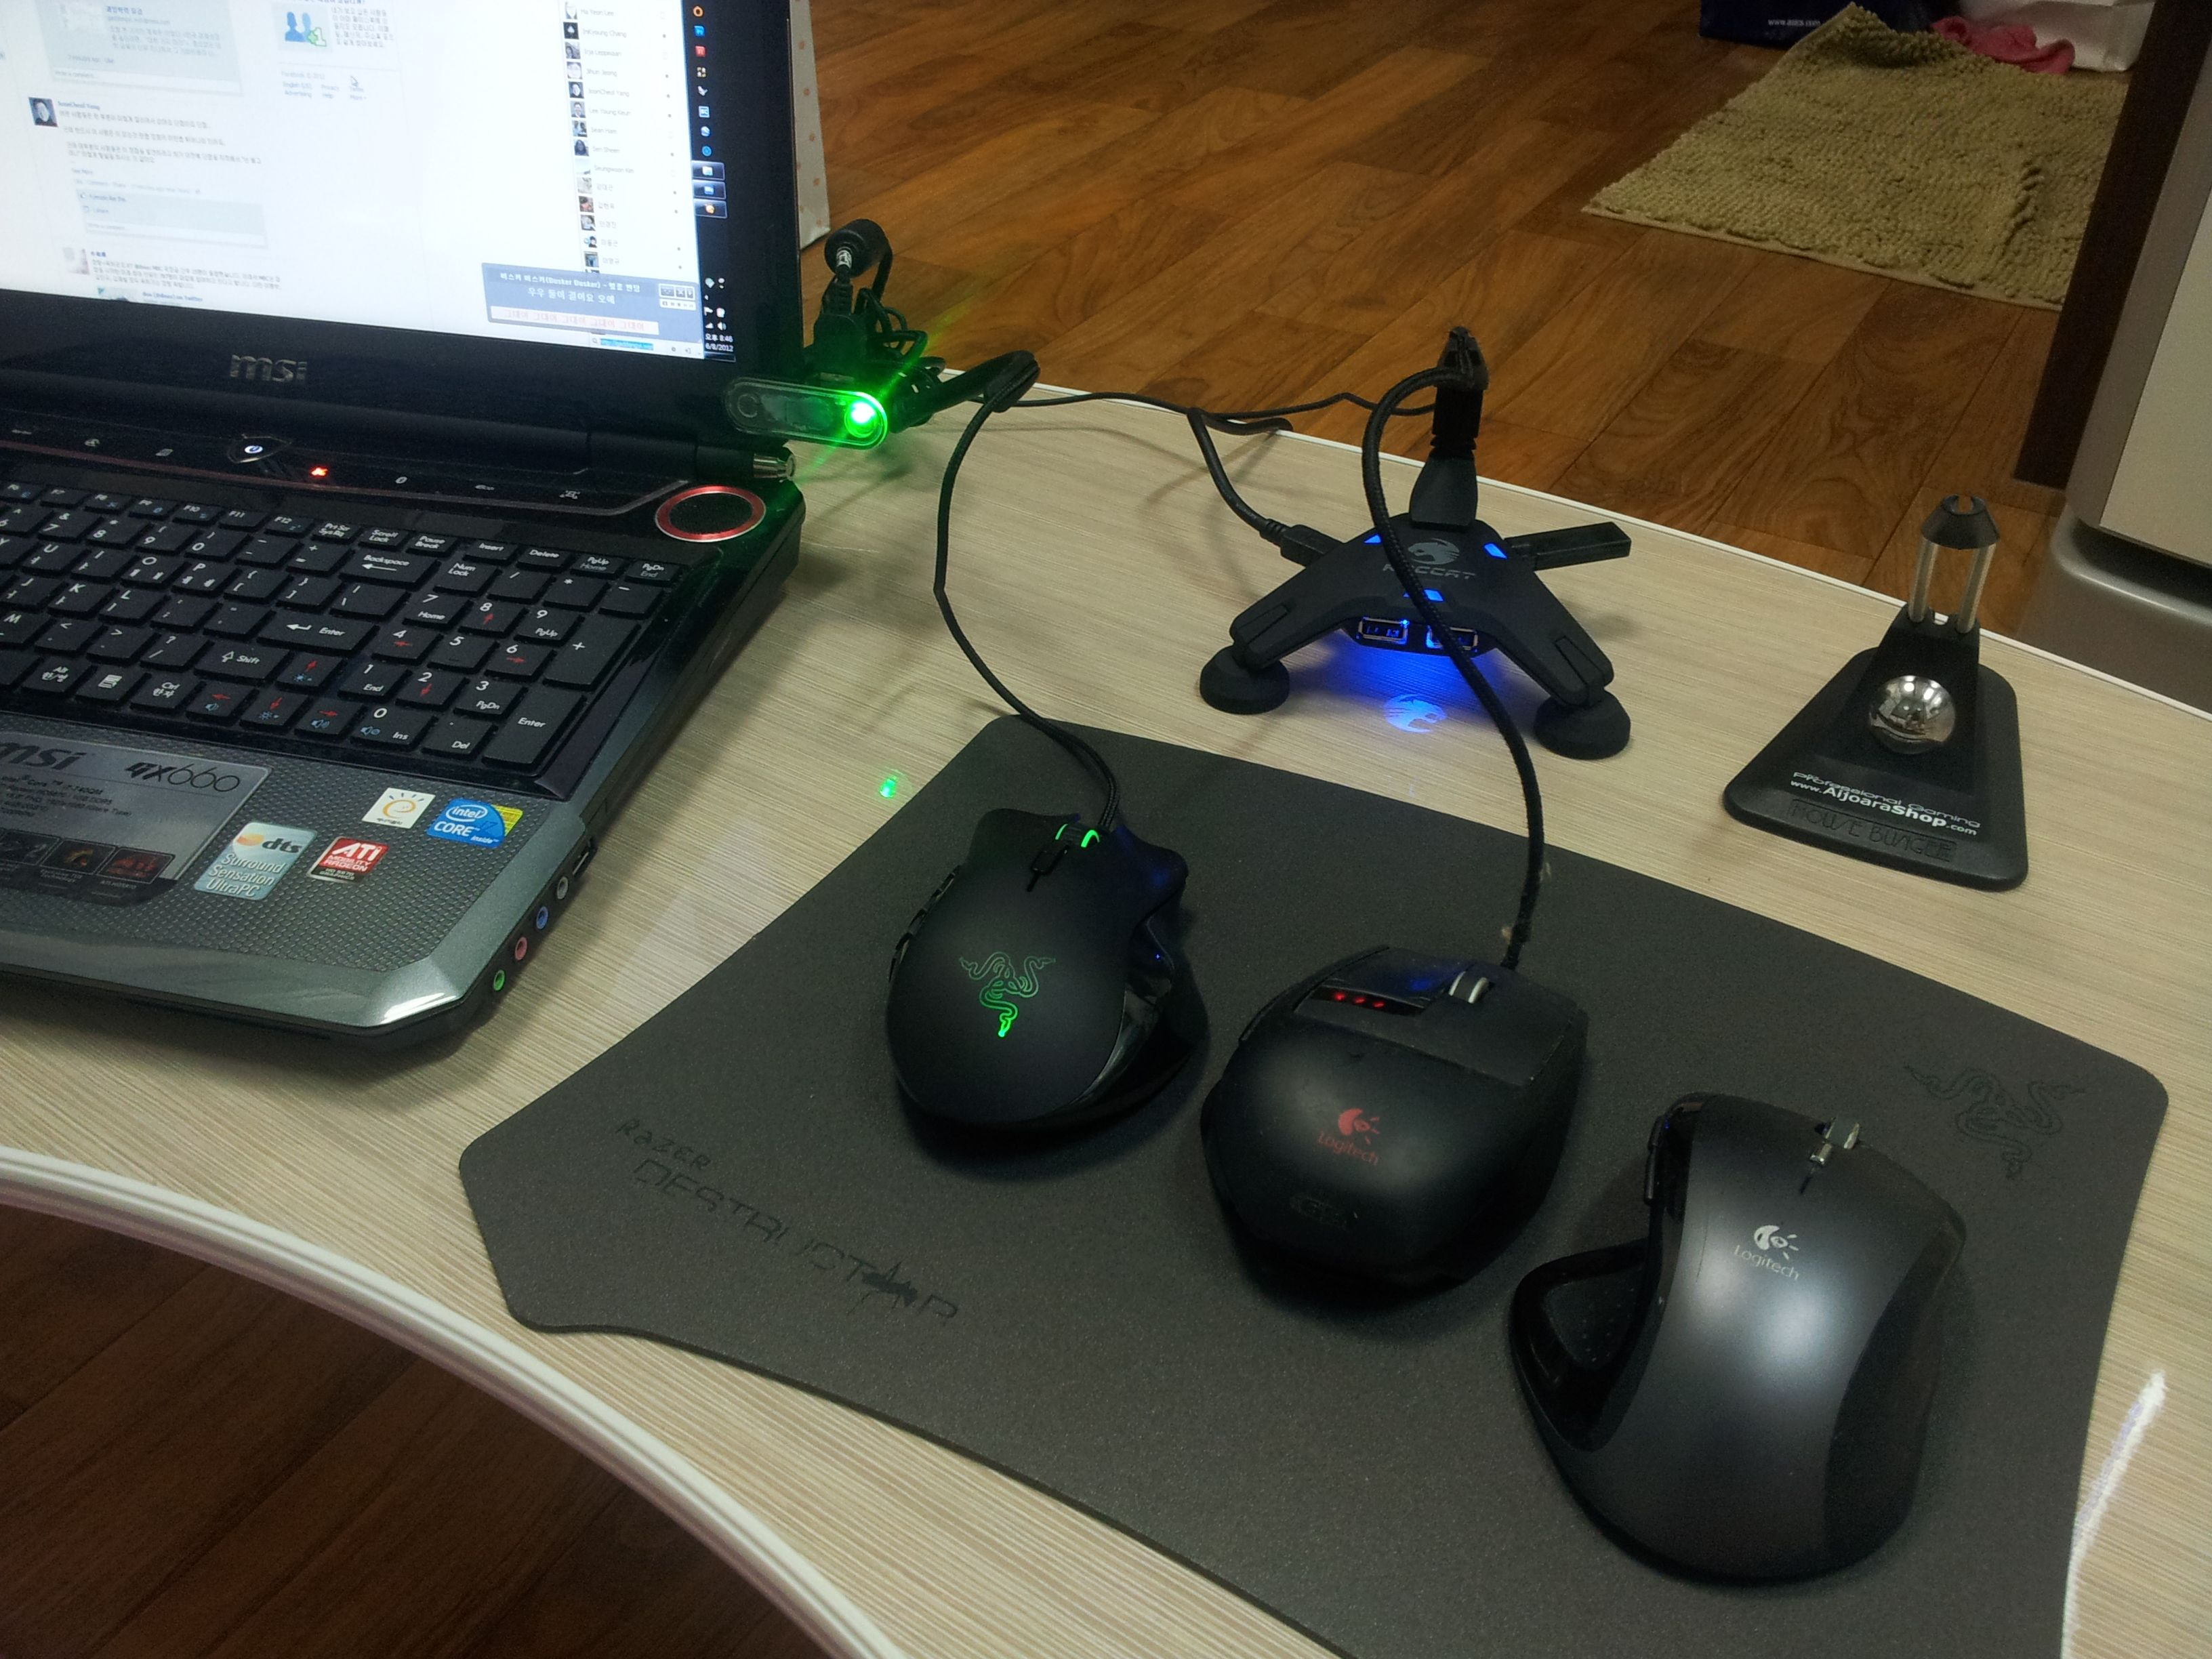 458aac27dcd iClip with other Mouse Bungee. | iClip | Computer mouse, Electronics